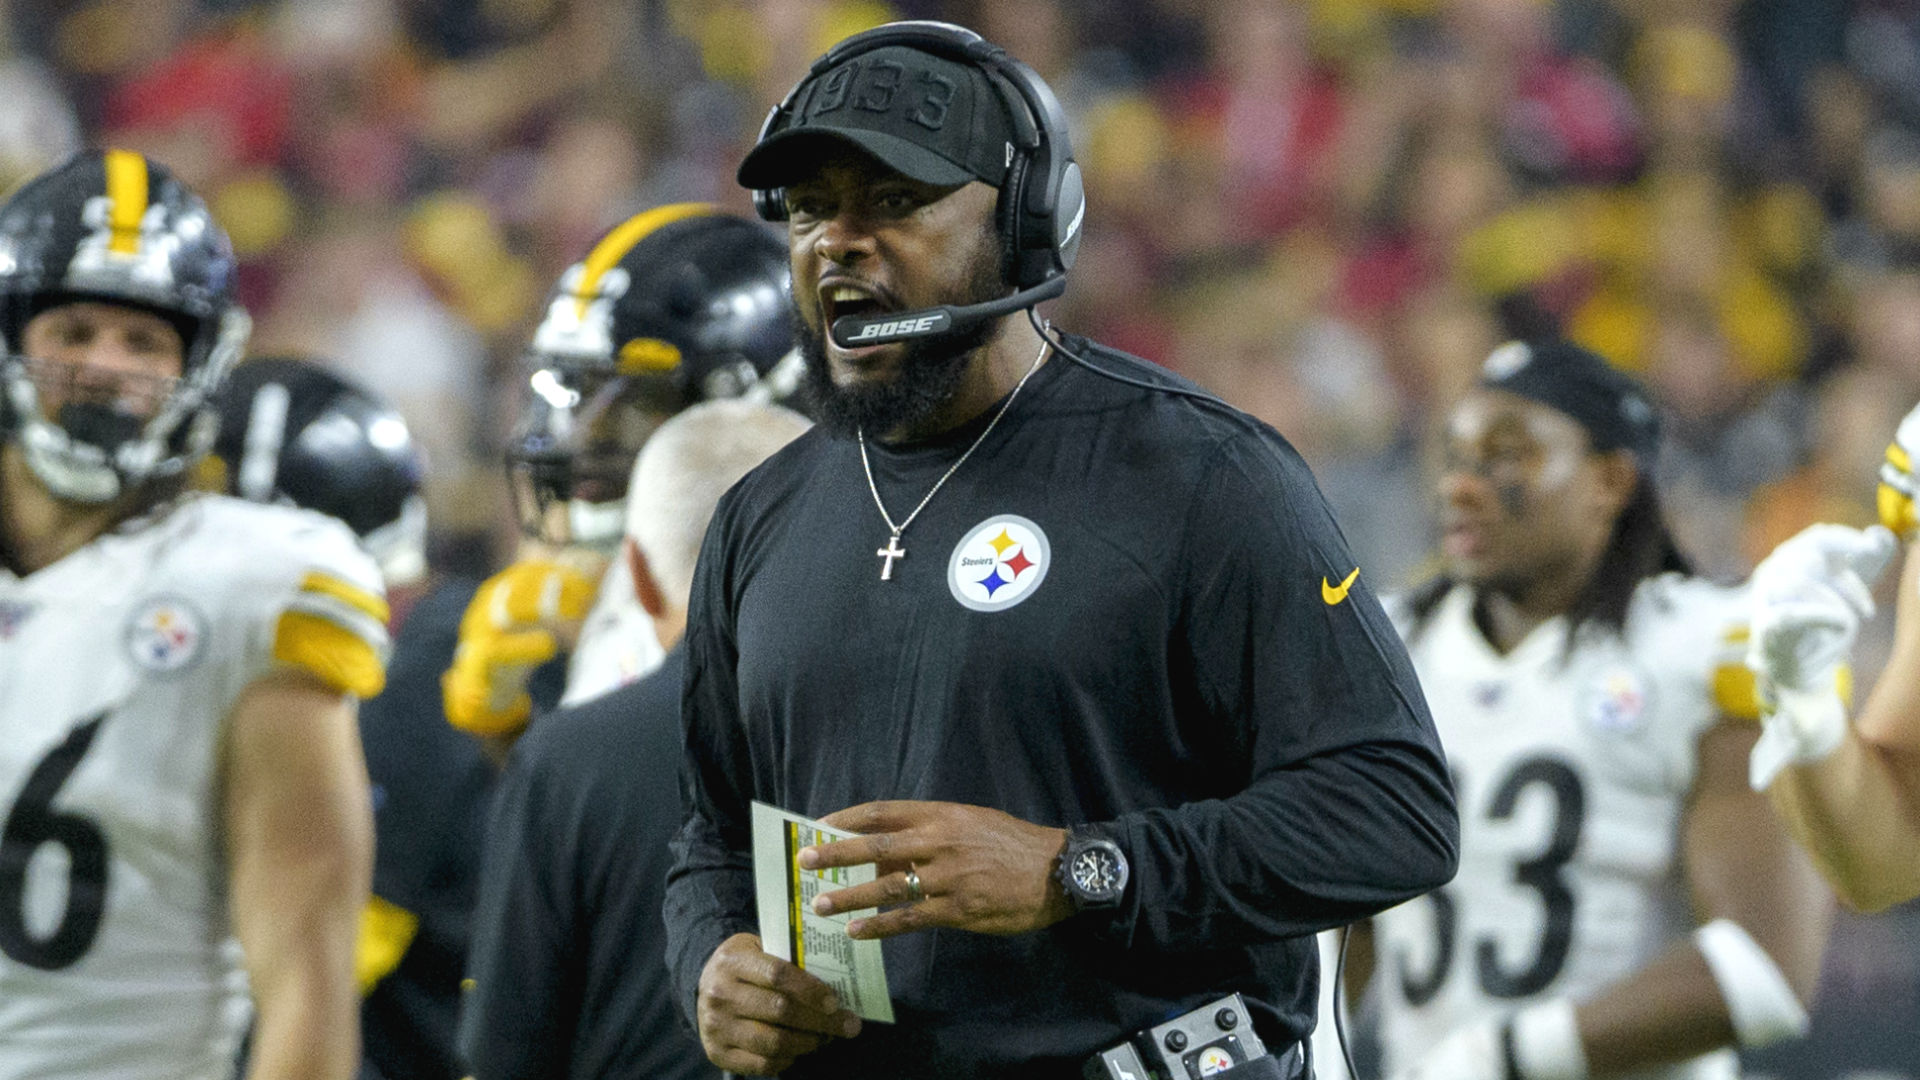 Mike Tomlin's miracle playoff push with Steelers in 2019 should force his critics to punt